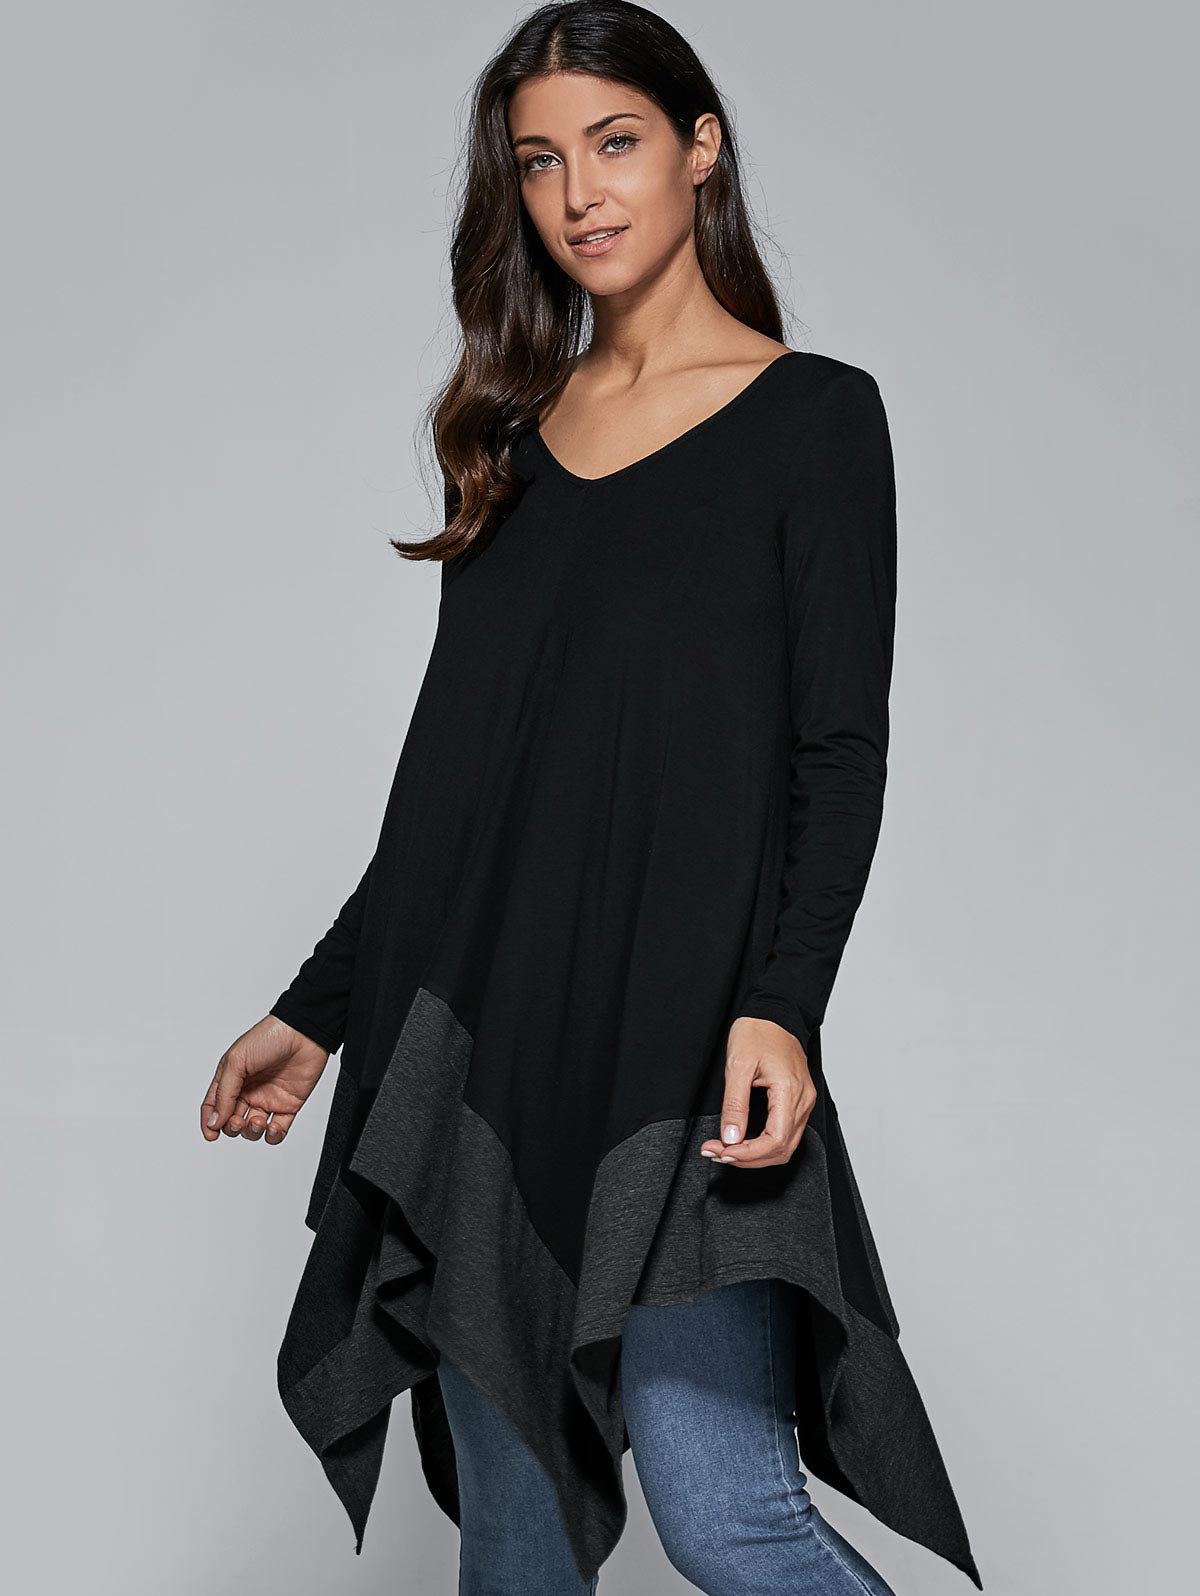 Loose Fitting Handkerchief BlouseWomen<br><br><br>Size: S<br>Color: BLACK AND GREY